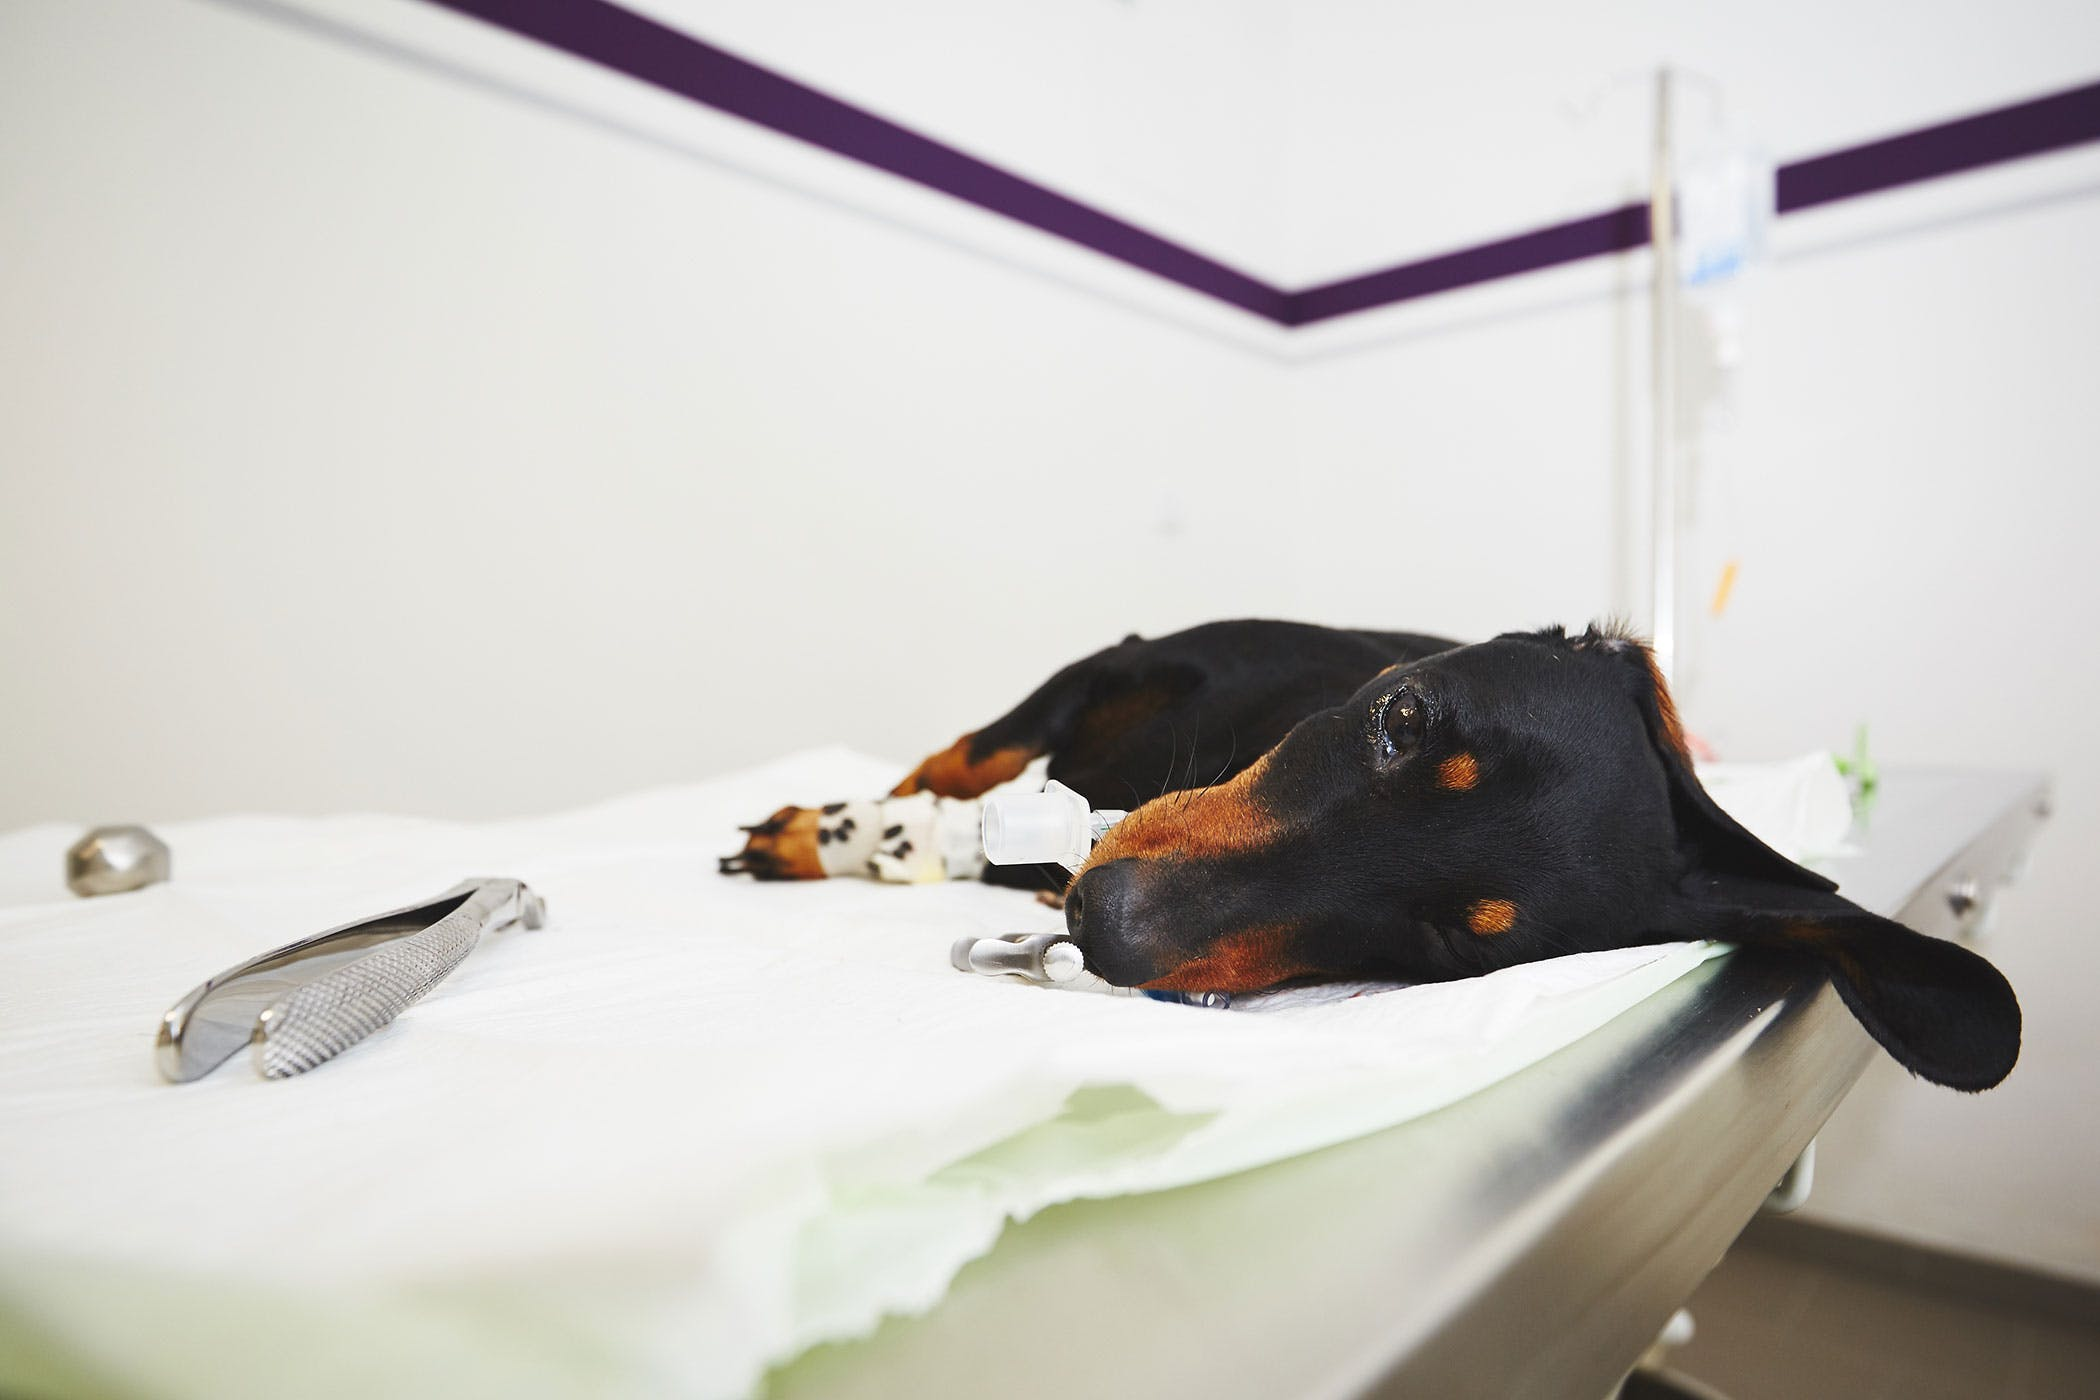 Paralysis Due to Spinal Cord Injury in Dogs - Symptoms